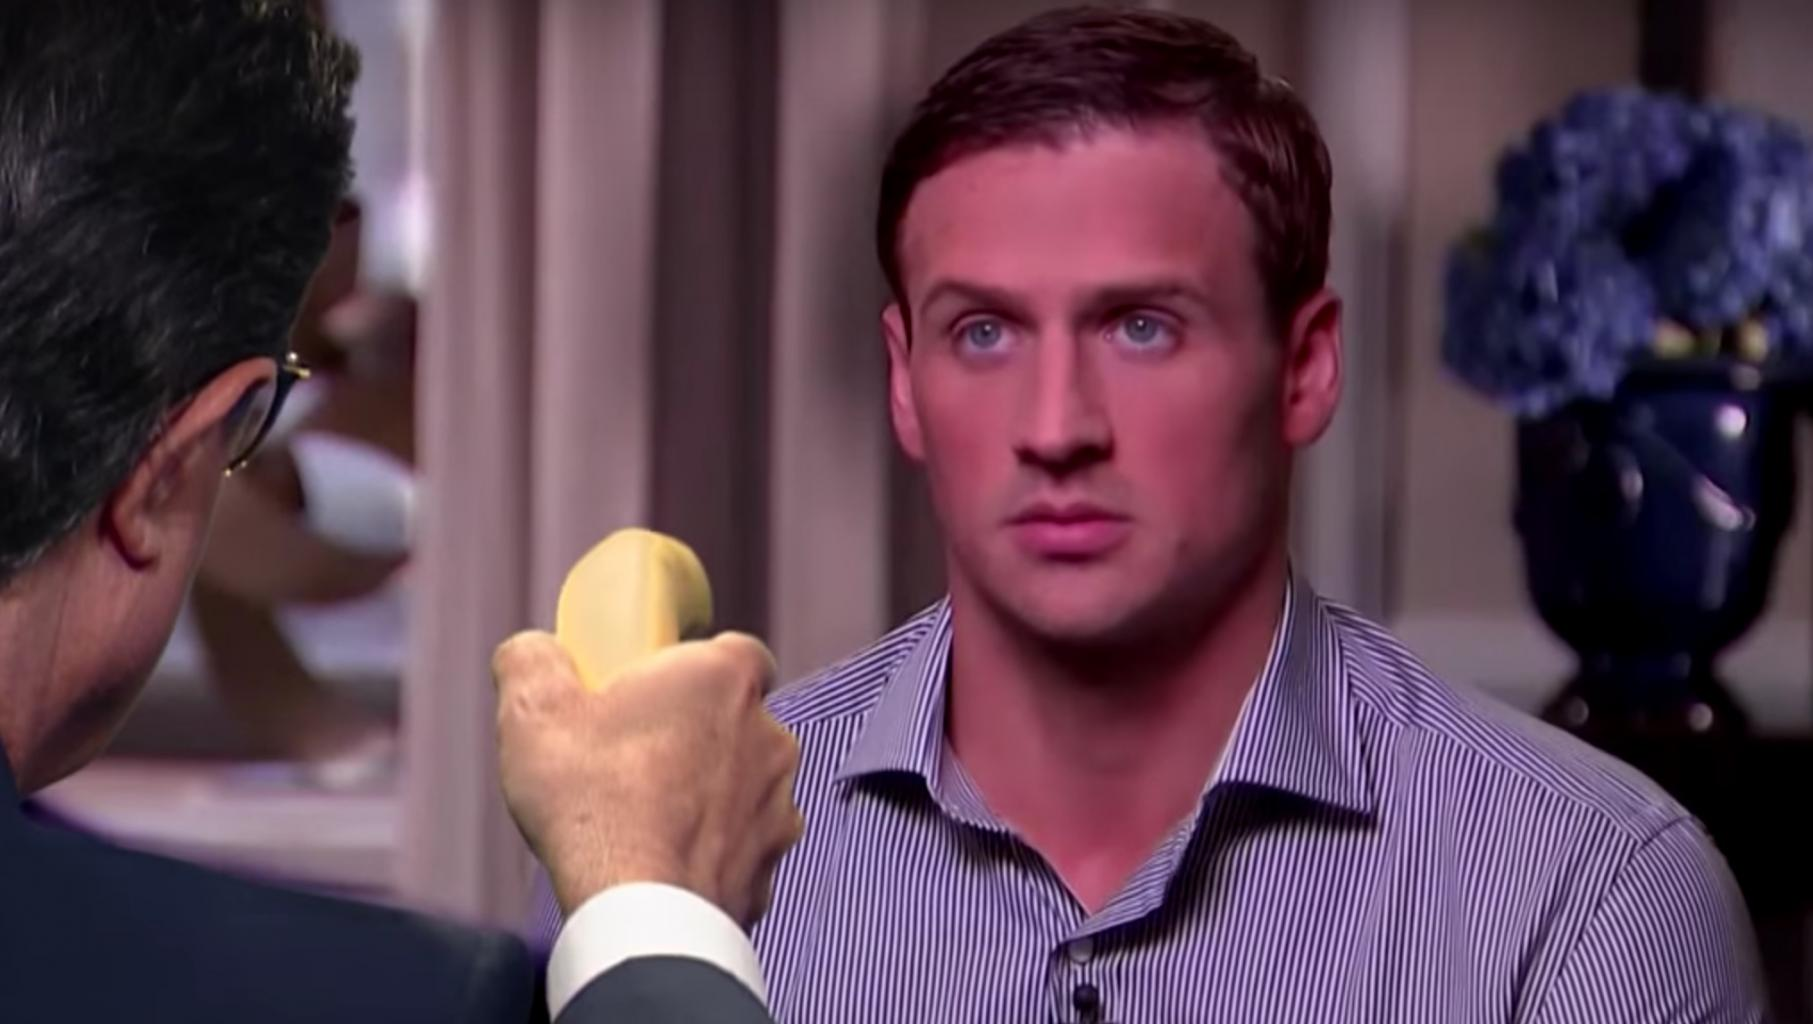 Stephen Colbert Conducts Hilarious Faux Interview With Disgraced Rio Swimmer Ryan Lochte